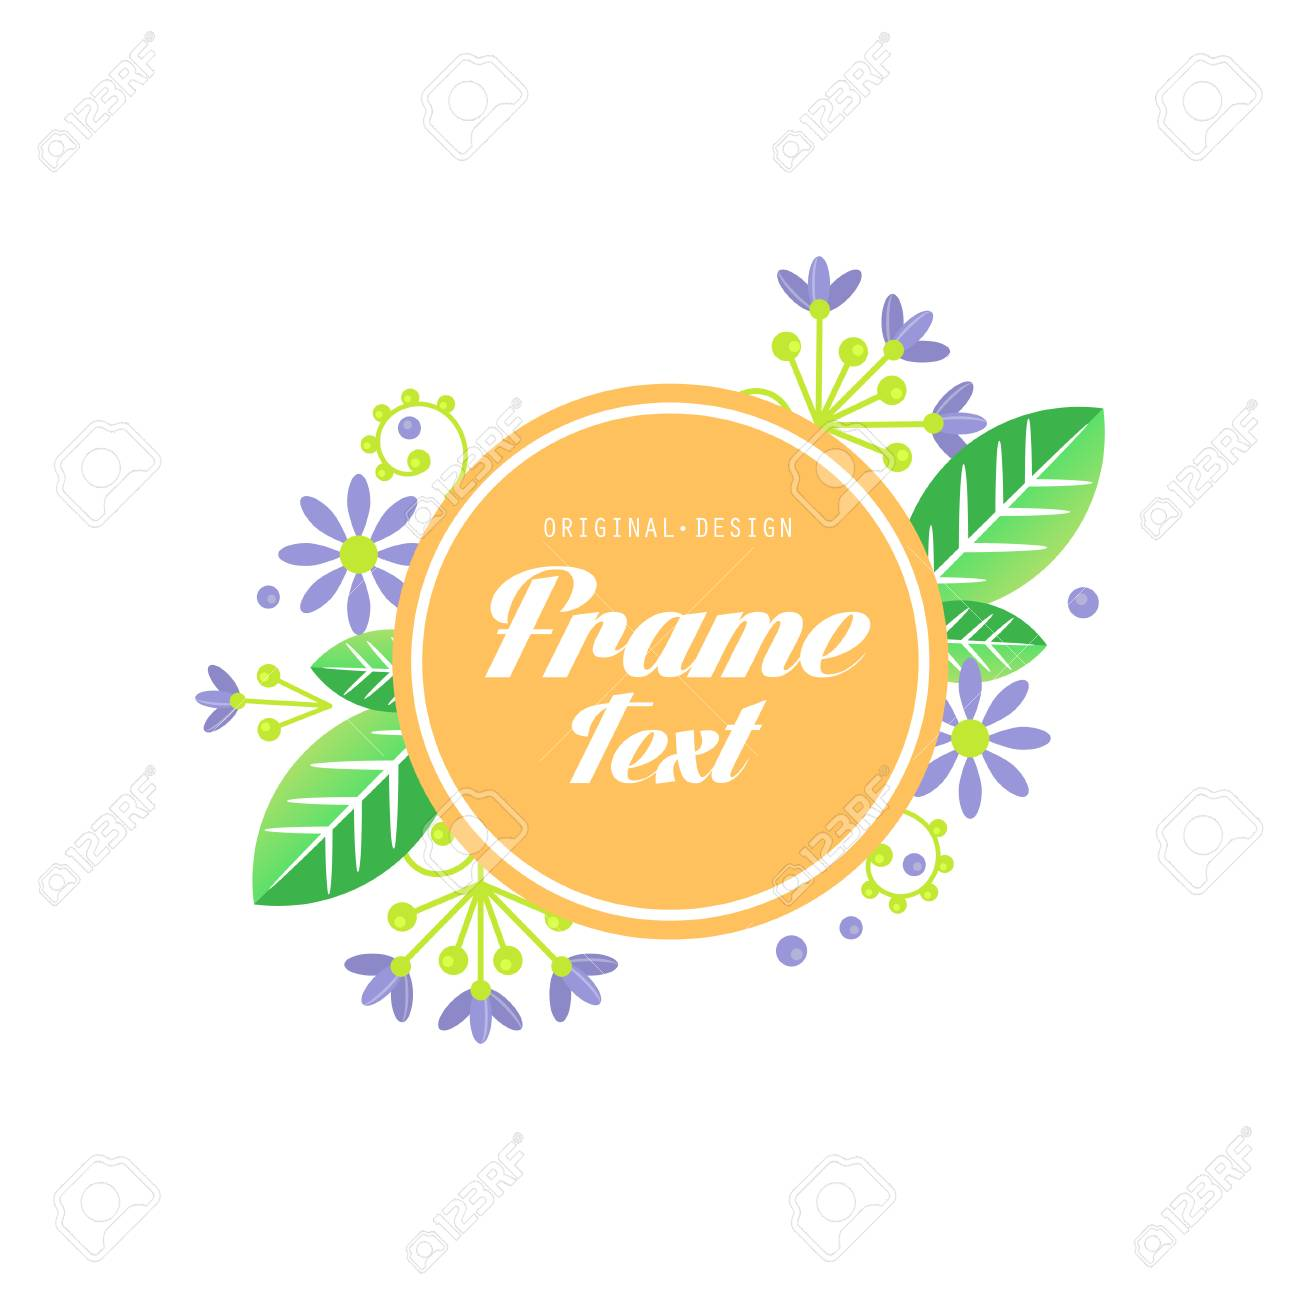 Floral frame original design, elegant sign for company identity,